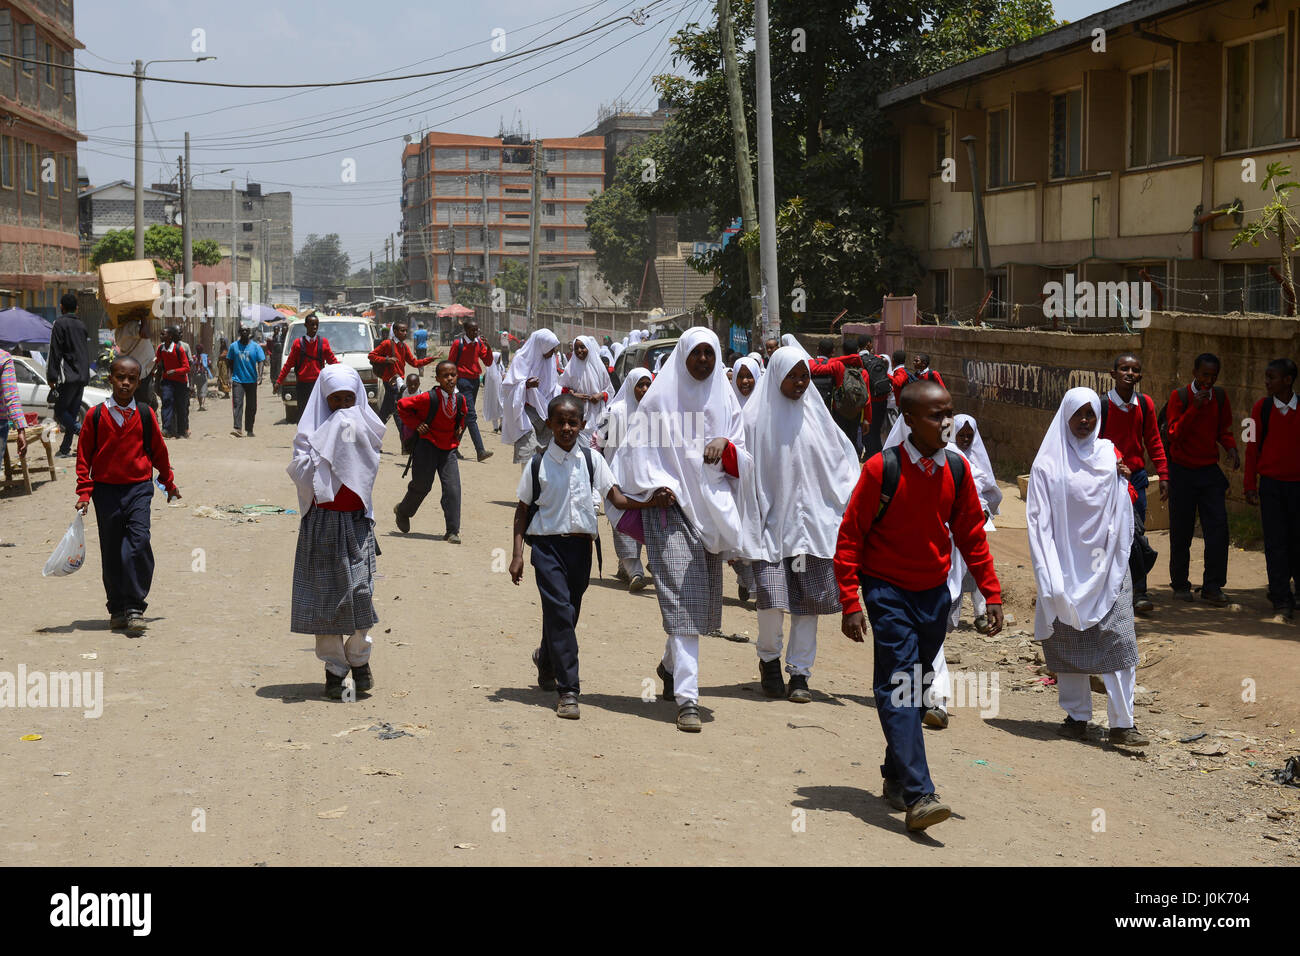 Little Mogadishu Stock Photos & Little Mogadishu Stock Images - Alamy